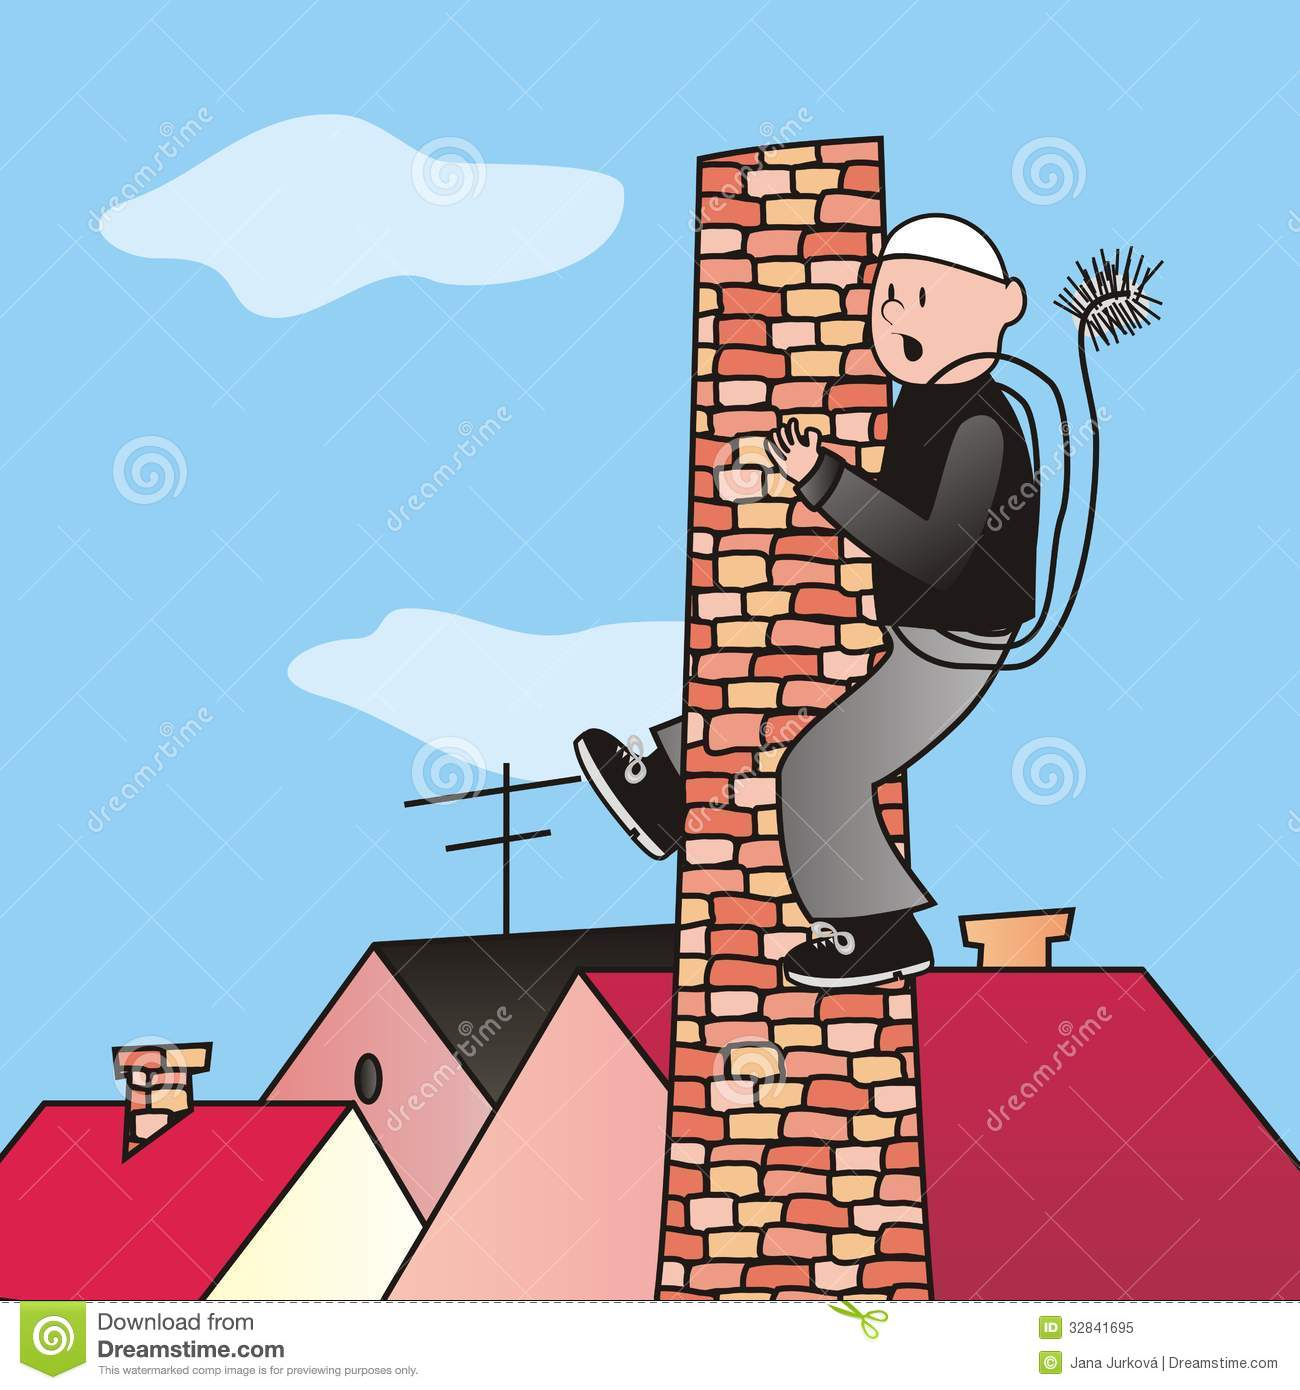 About Anderson's Chimney and Masonry Services